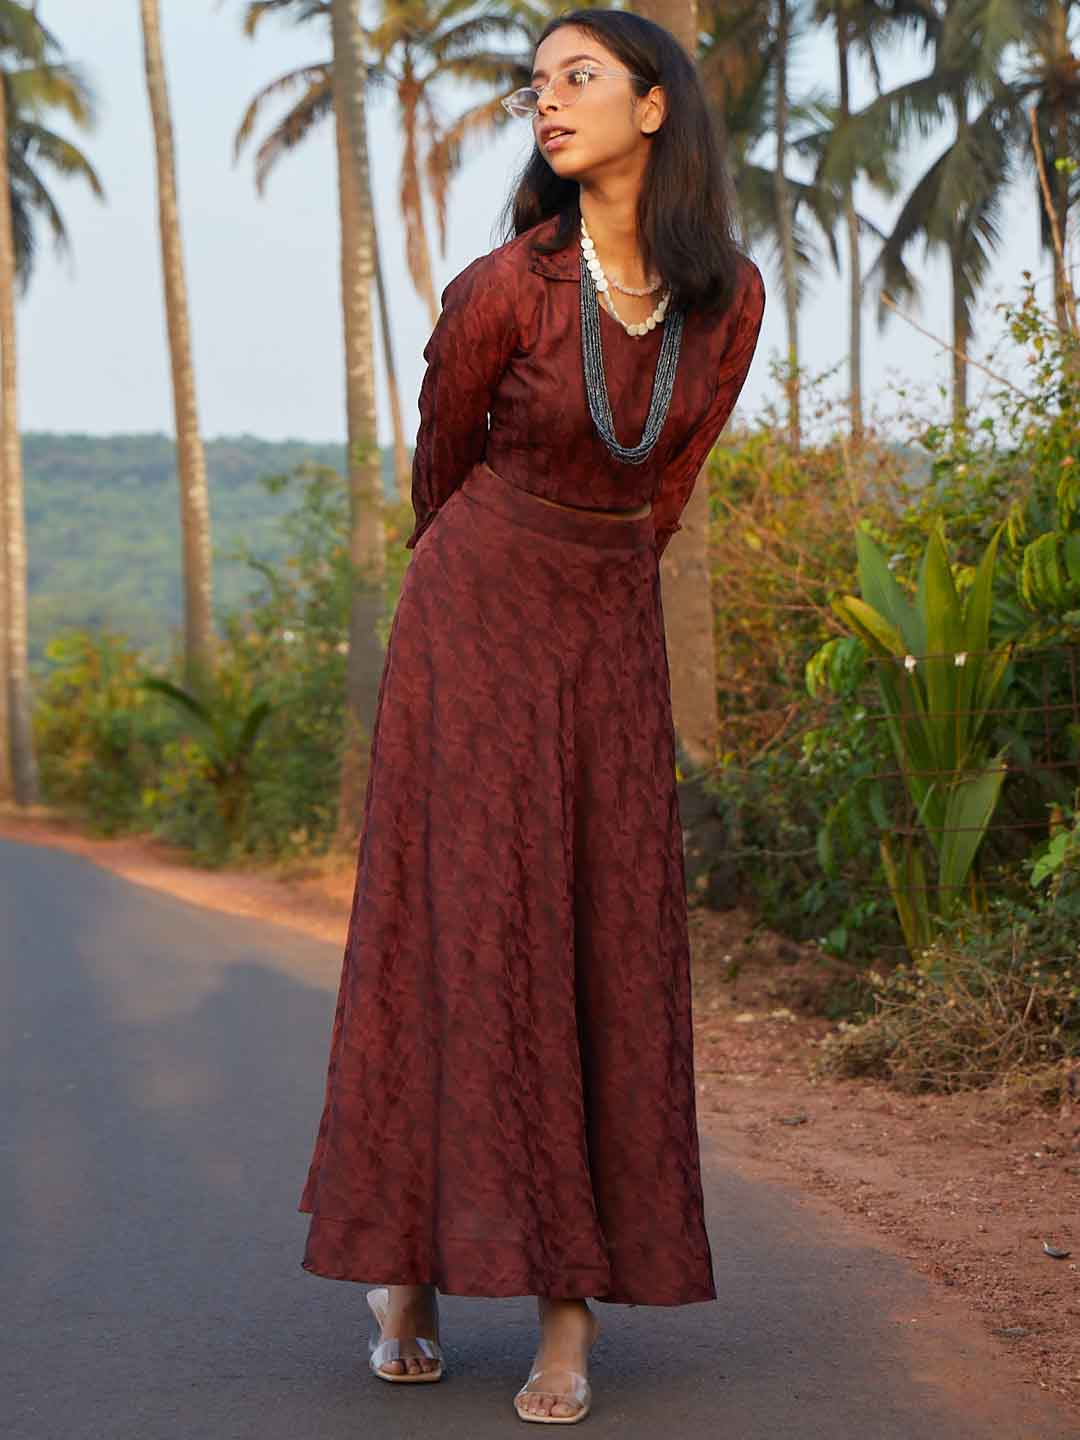 Rust Embroidery Janvi Jacquard Flaired Skirt Top